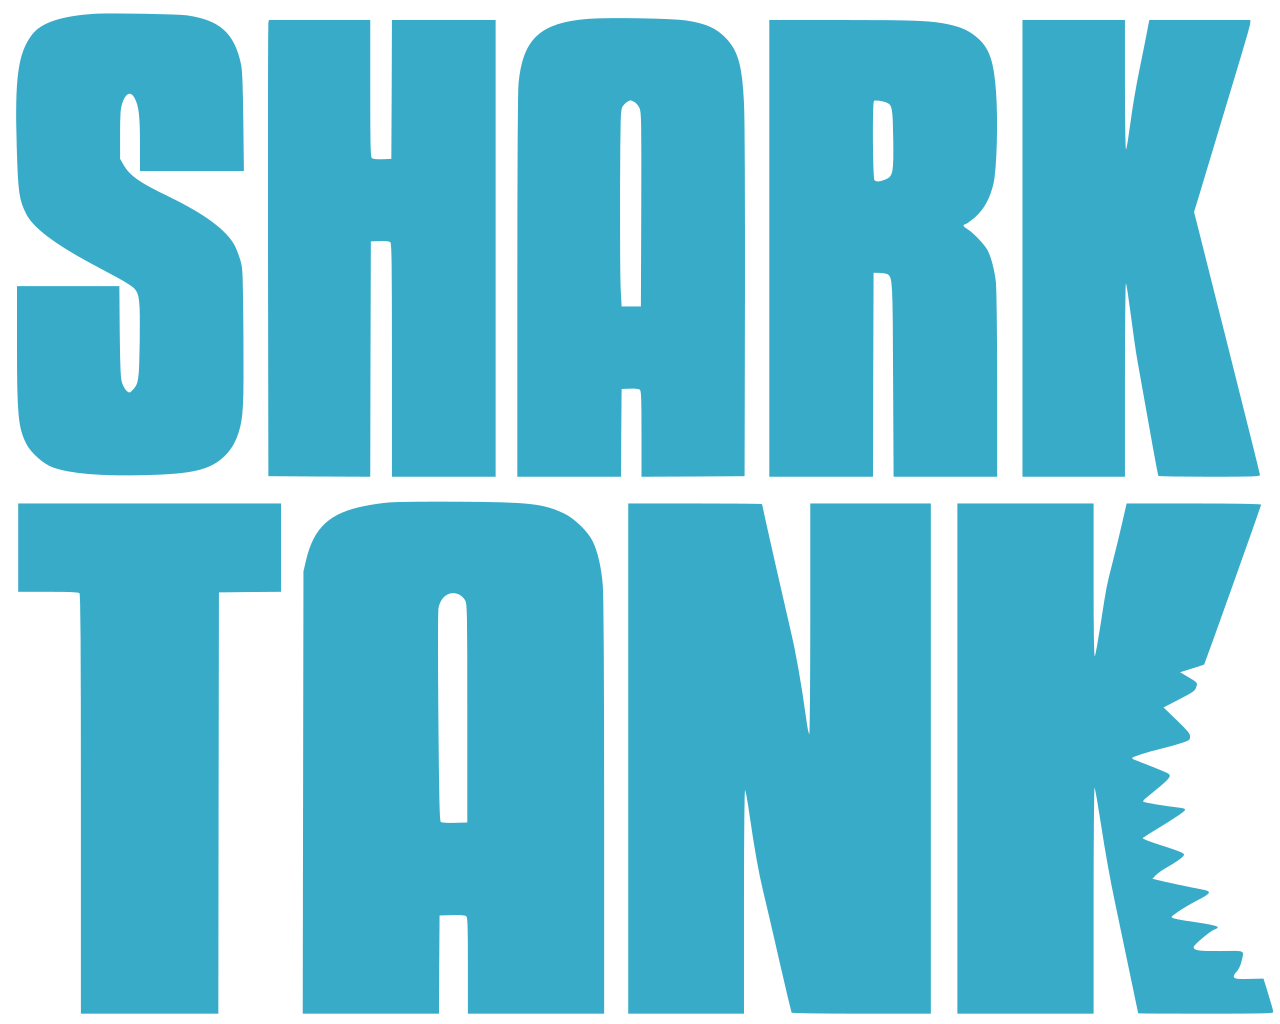 Shark Tank makes inventors and companies think outside the box. Some have great ideas and others are epic fails.